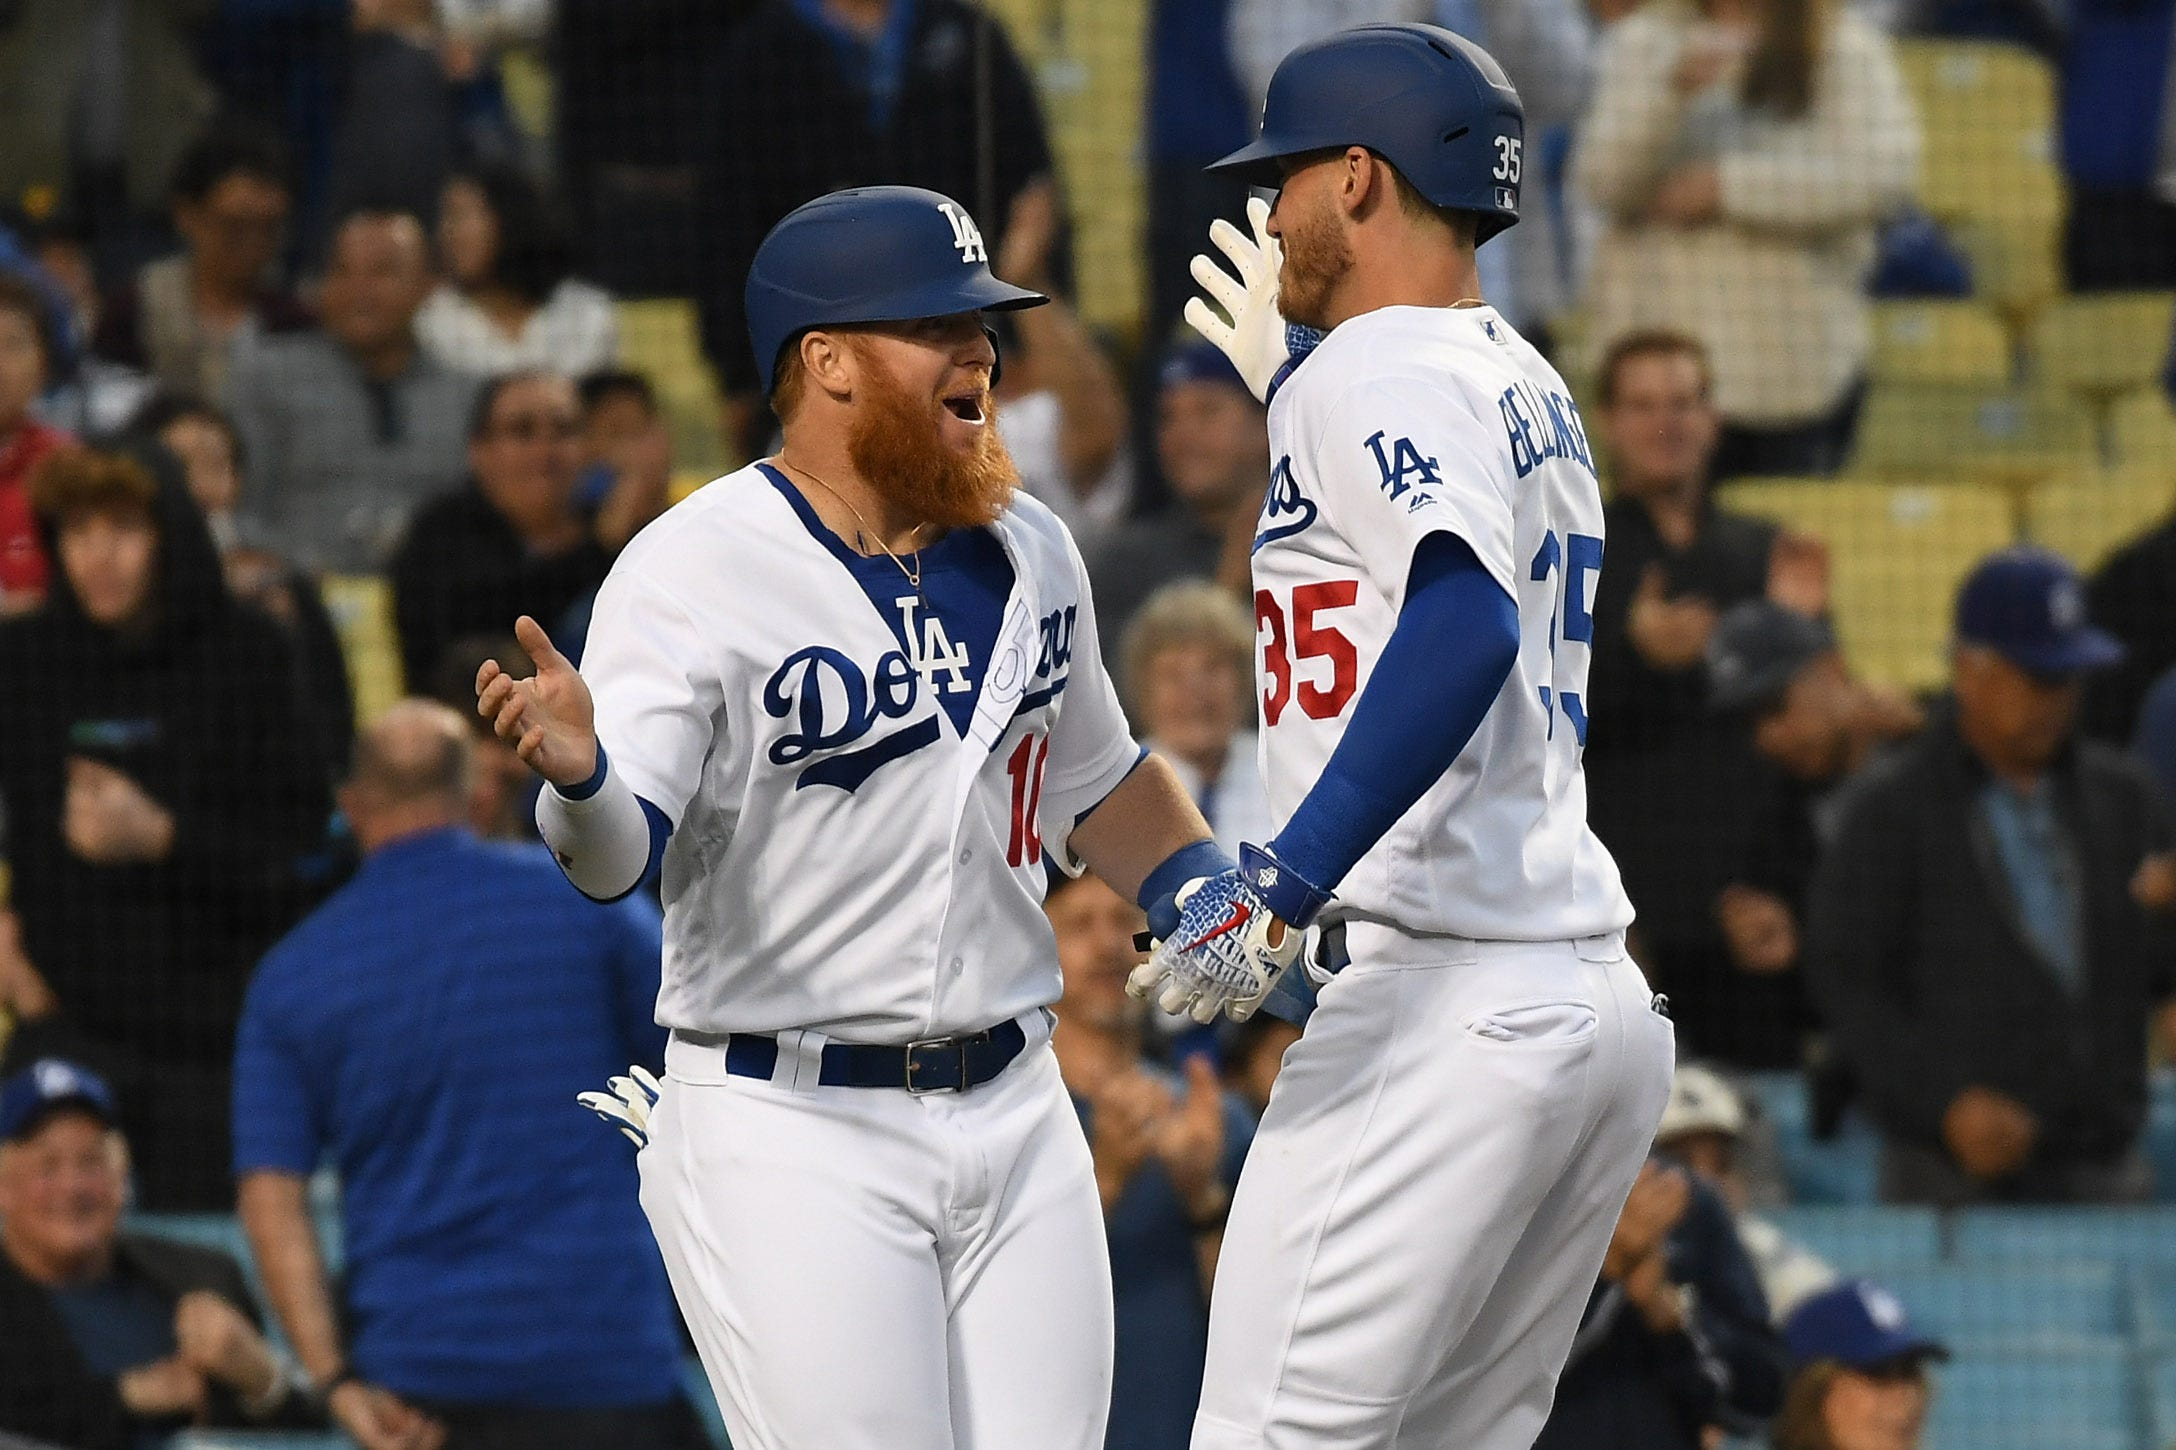 The Dodgers started the season 19-11.